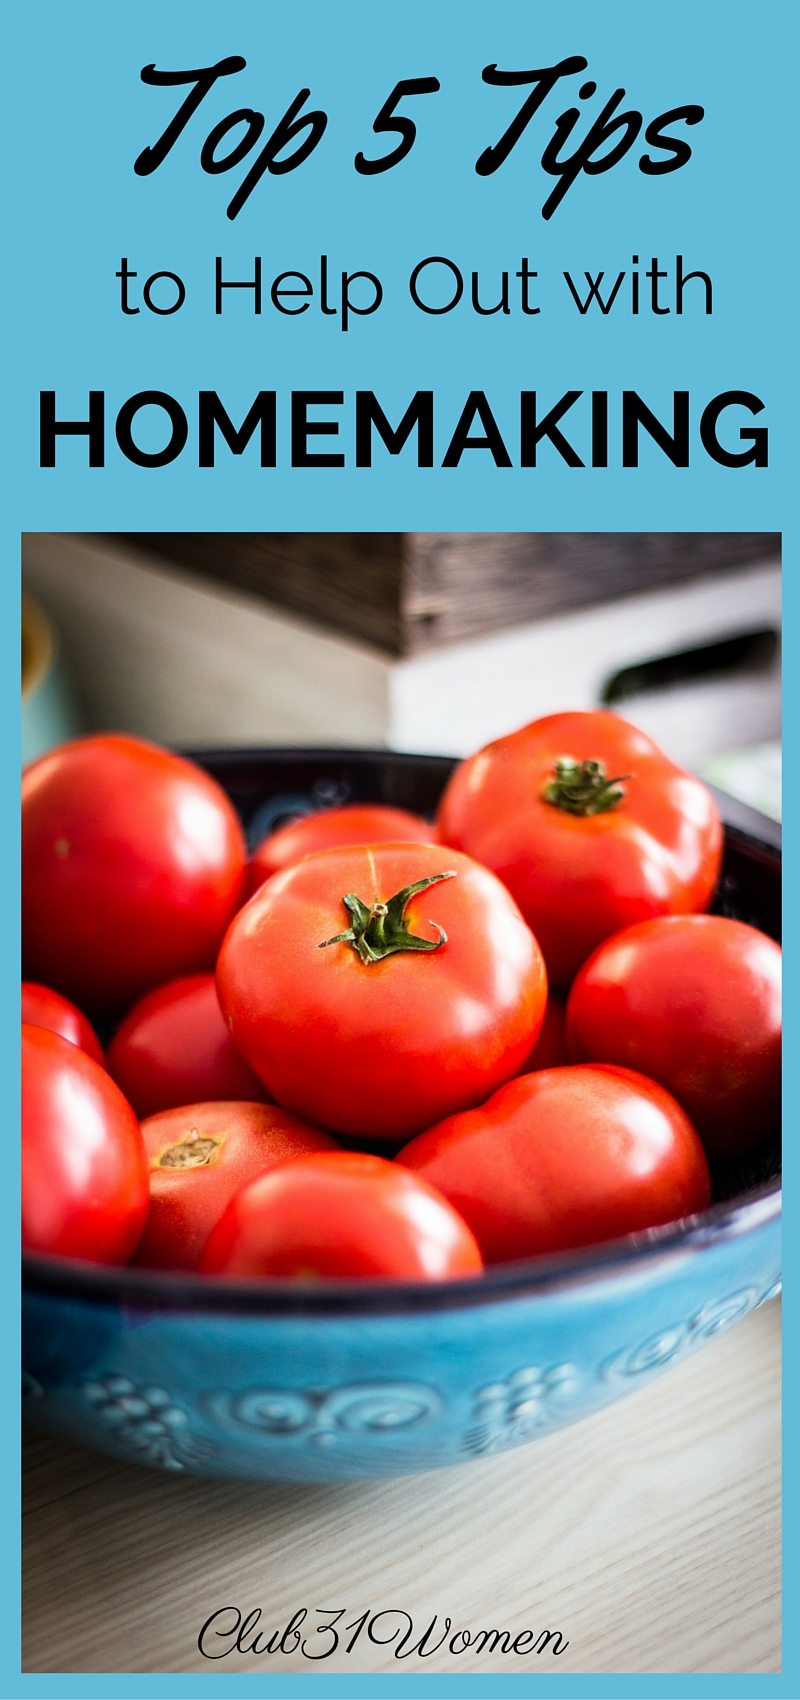 My Top Five Tips to Help You Out With Homemaking